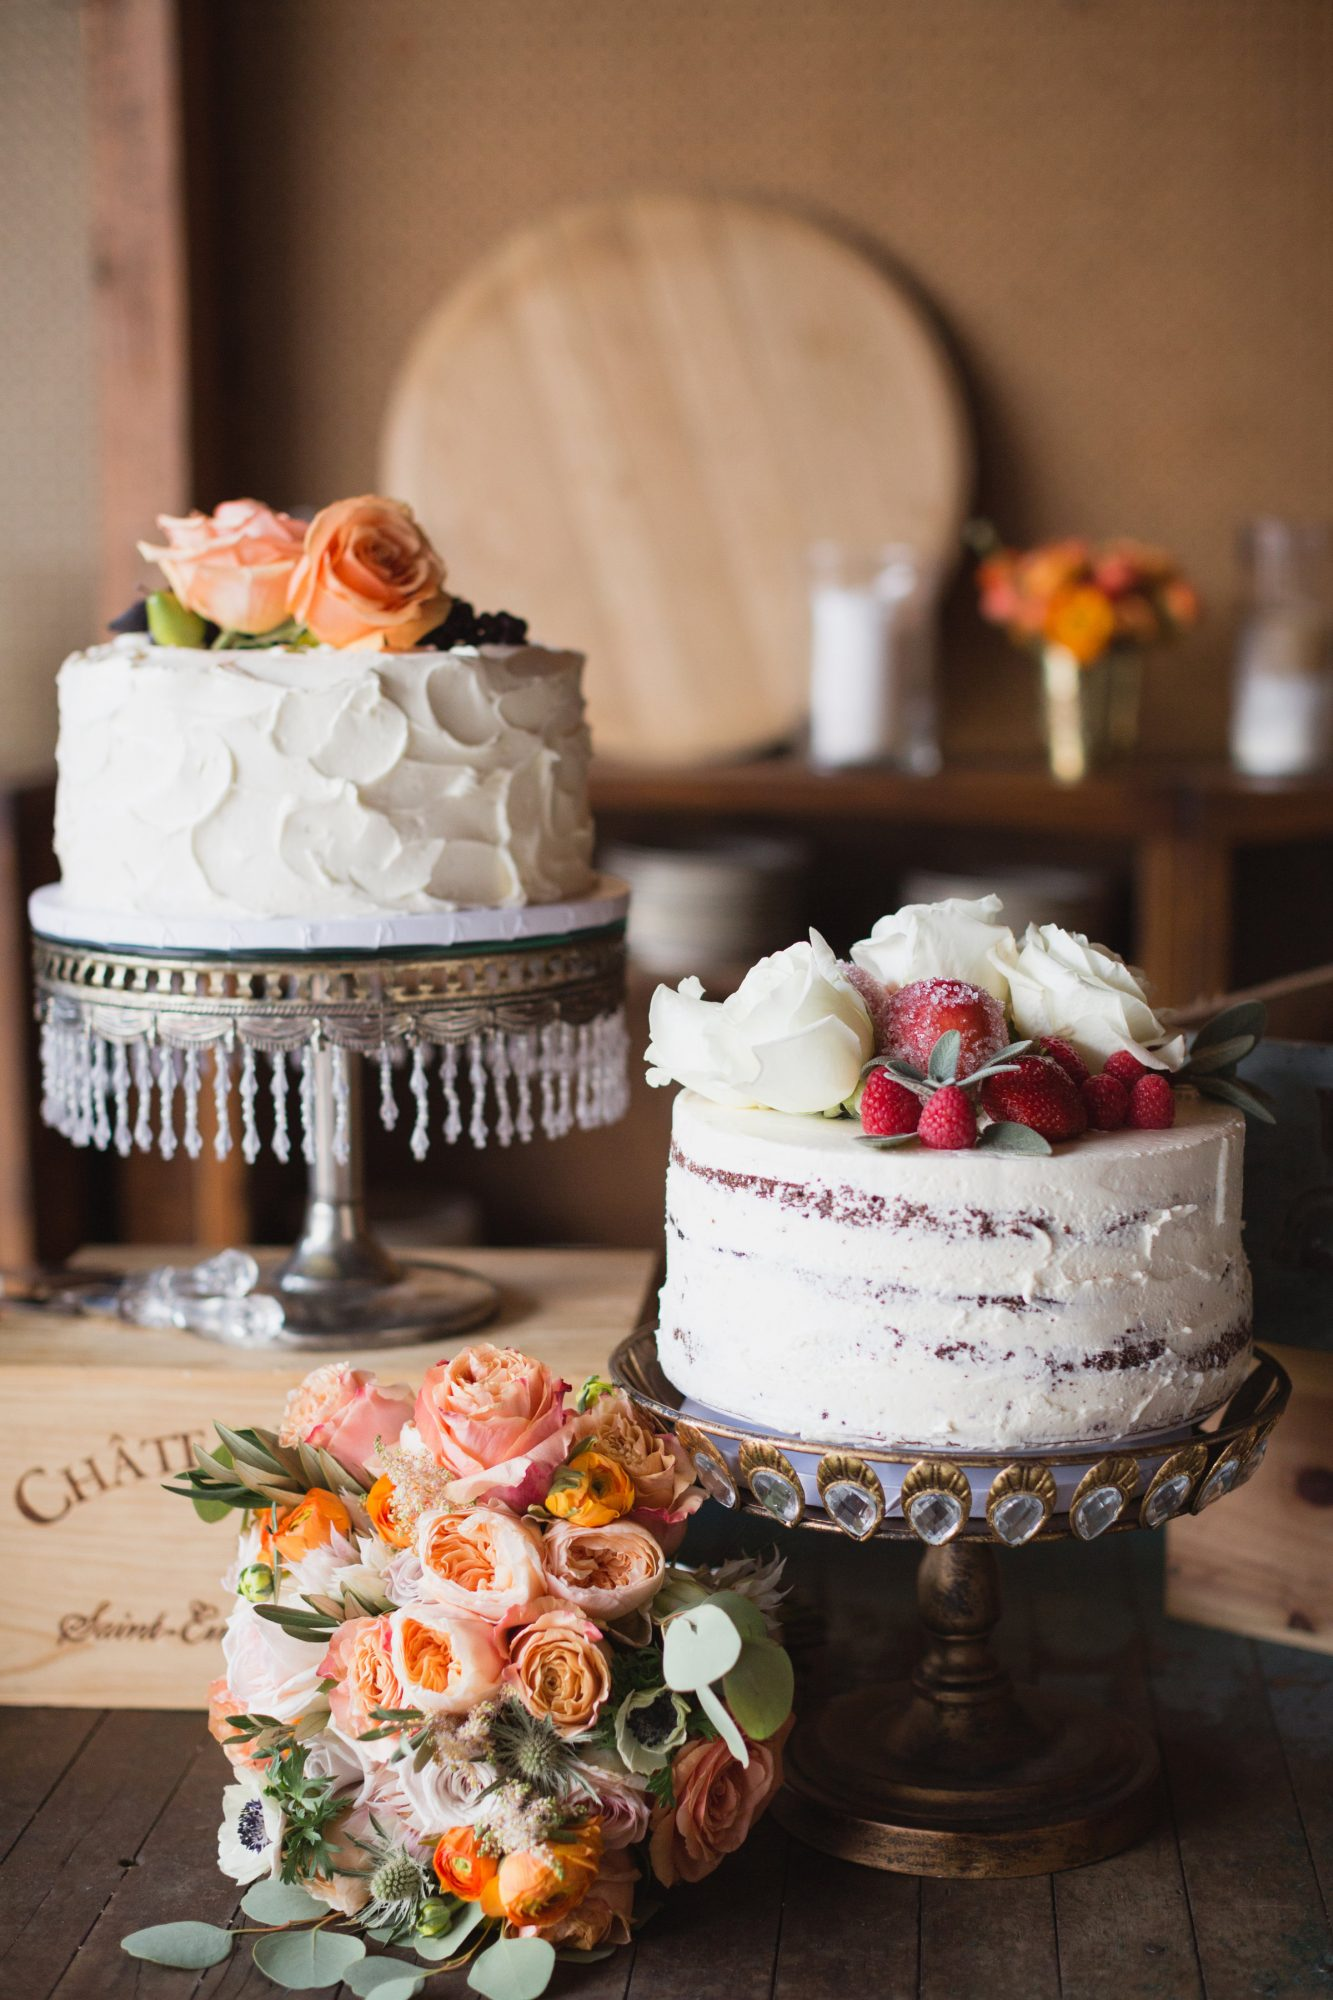 simple white with floral topping wedding cakes